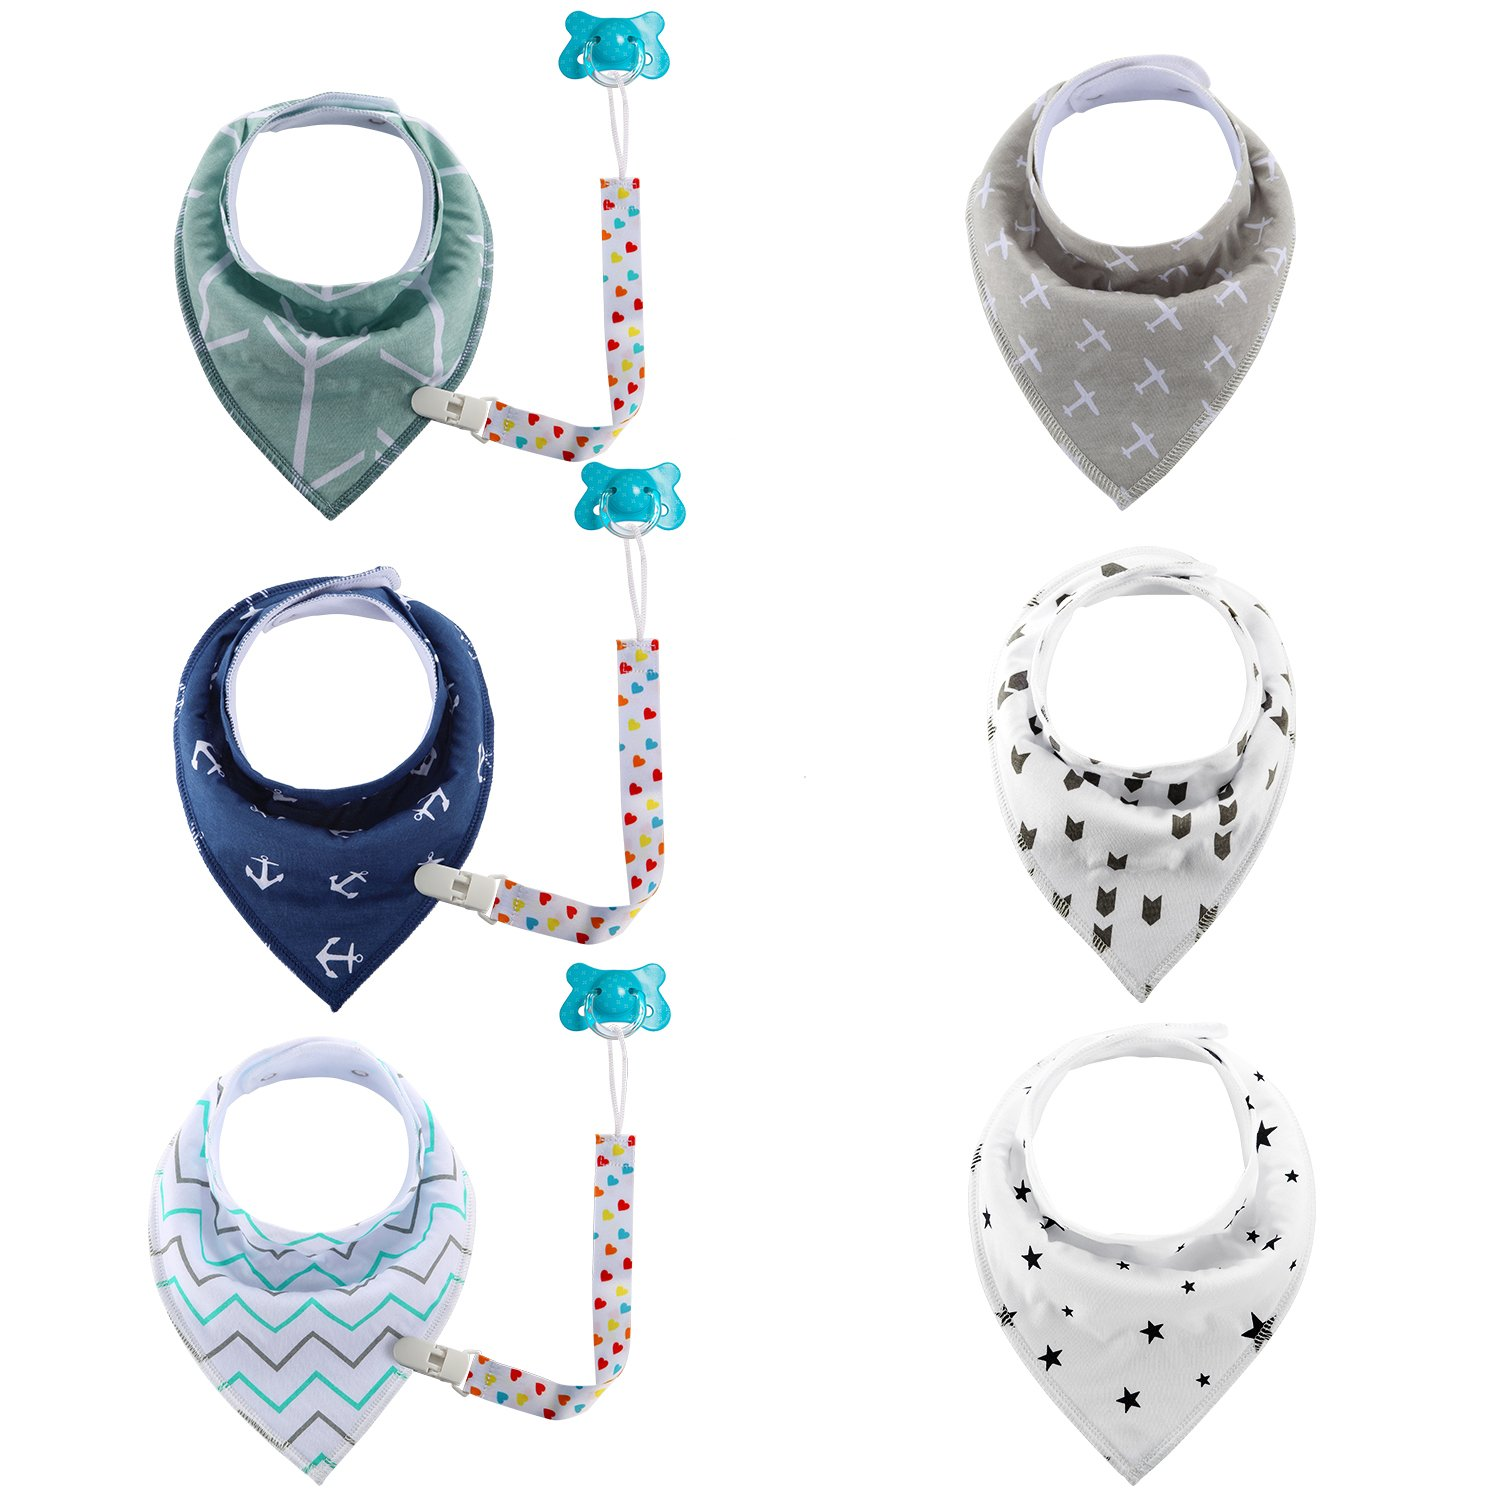 Fitfirst Baby Bib Set, 6 Super Absorbent, Soft, Chic Organic Drool Bibs + 3 Pacifier Clips Holder,Excellent Baby Shower/Registry Gift (1, 6pcs+3pcs) WMB-BB9P-CF